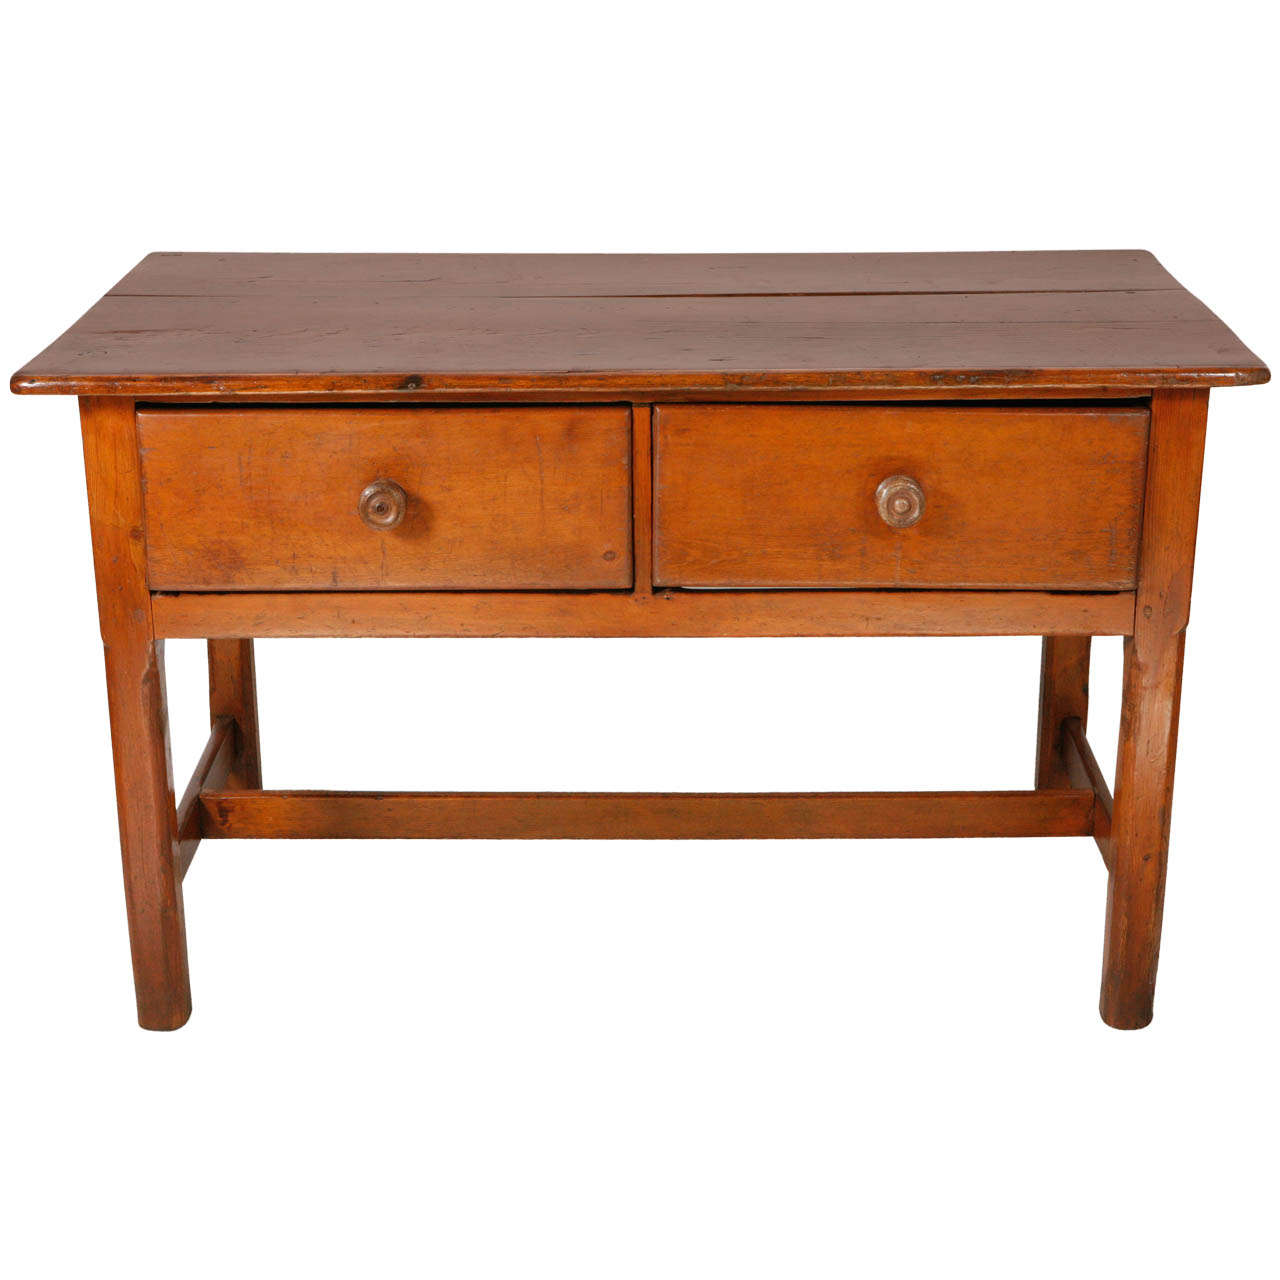 Marvelous photograph of Two Drawer Pine Table / Desk at 1stdibs with #B44F0F color and 1280x1280 pixels